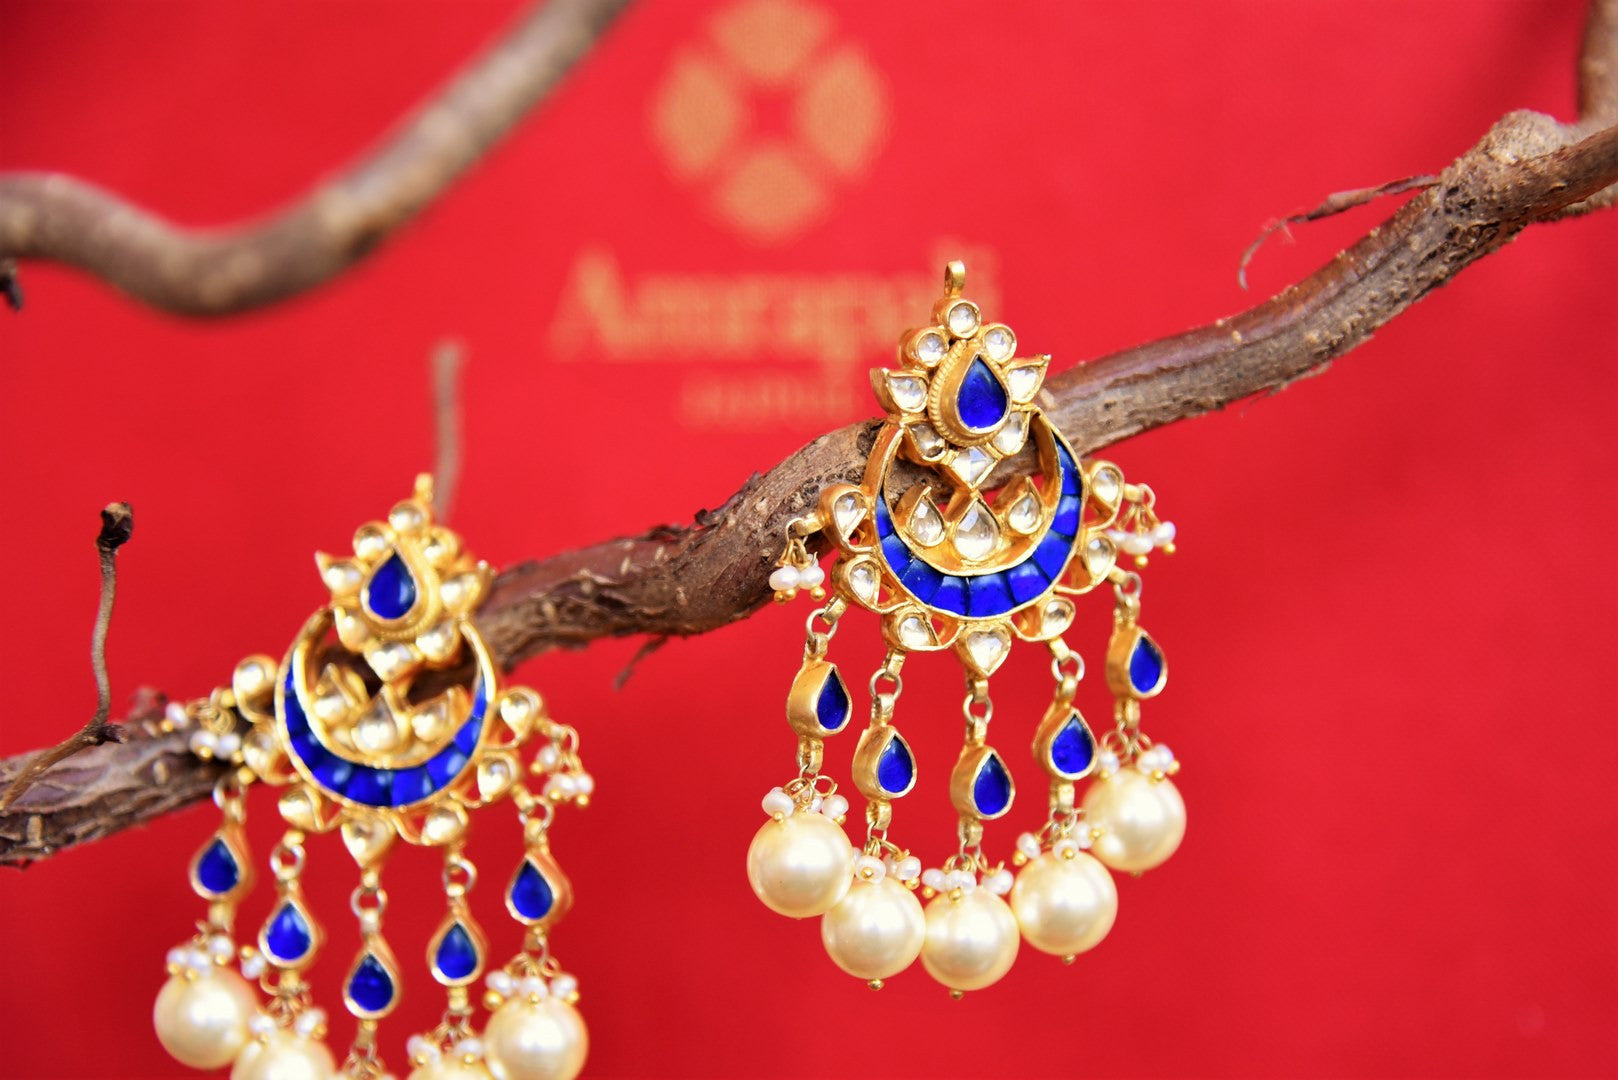 Buy silver gold plated Amrapali blue glass earrings online in USA with pearls drops. Shop ethnic Indian earrings from Pure Elegance store in USA for every occasion.-closeup